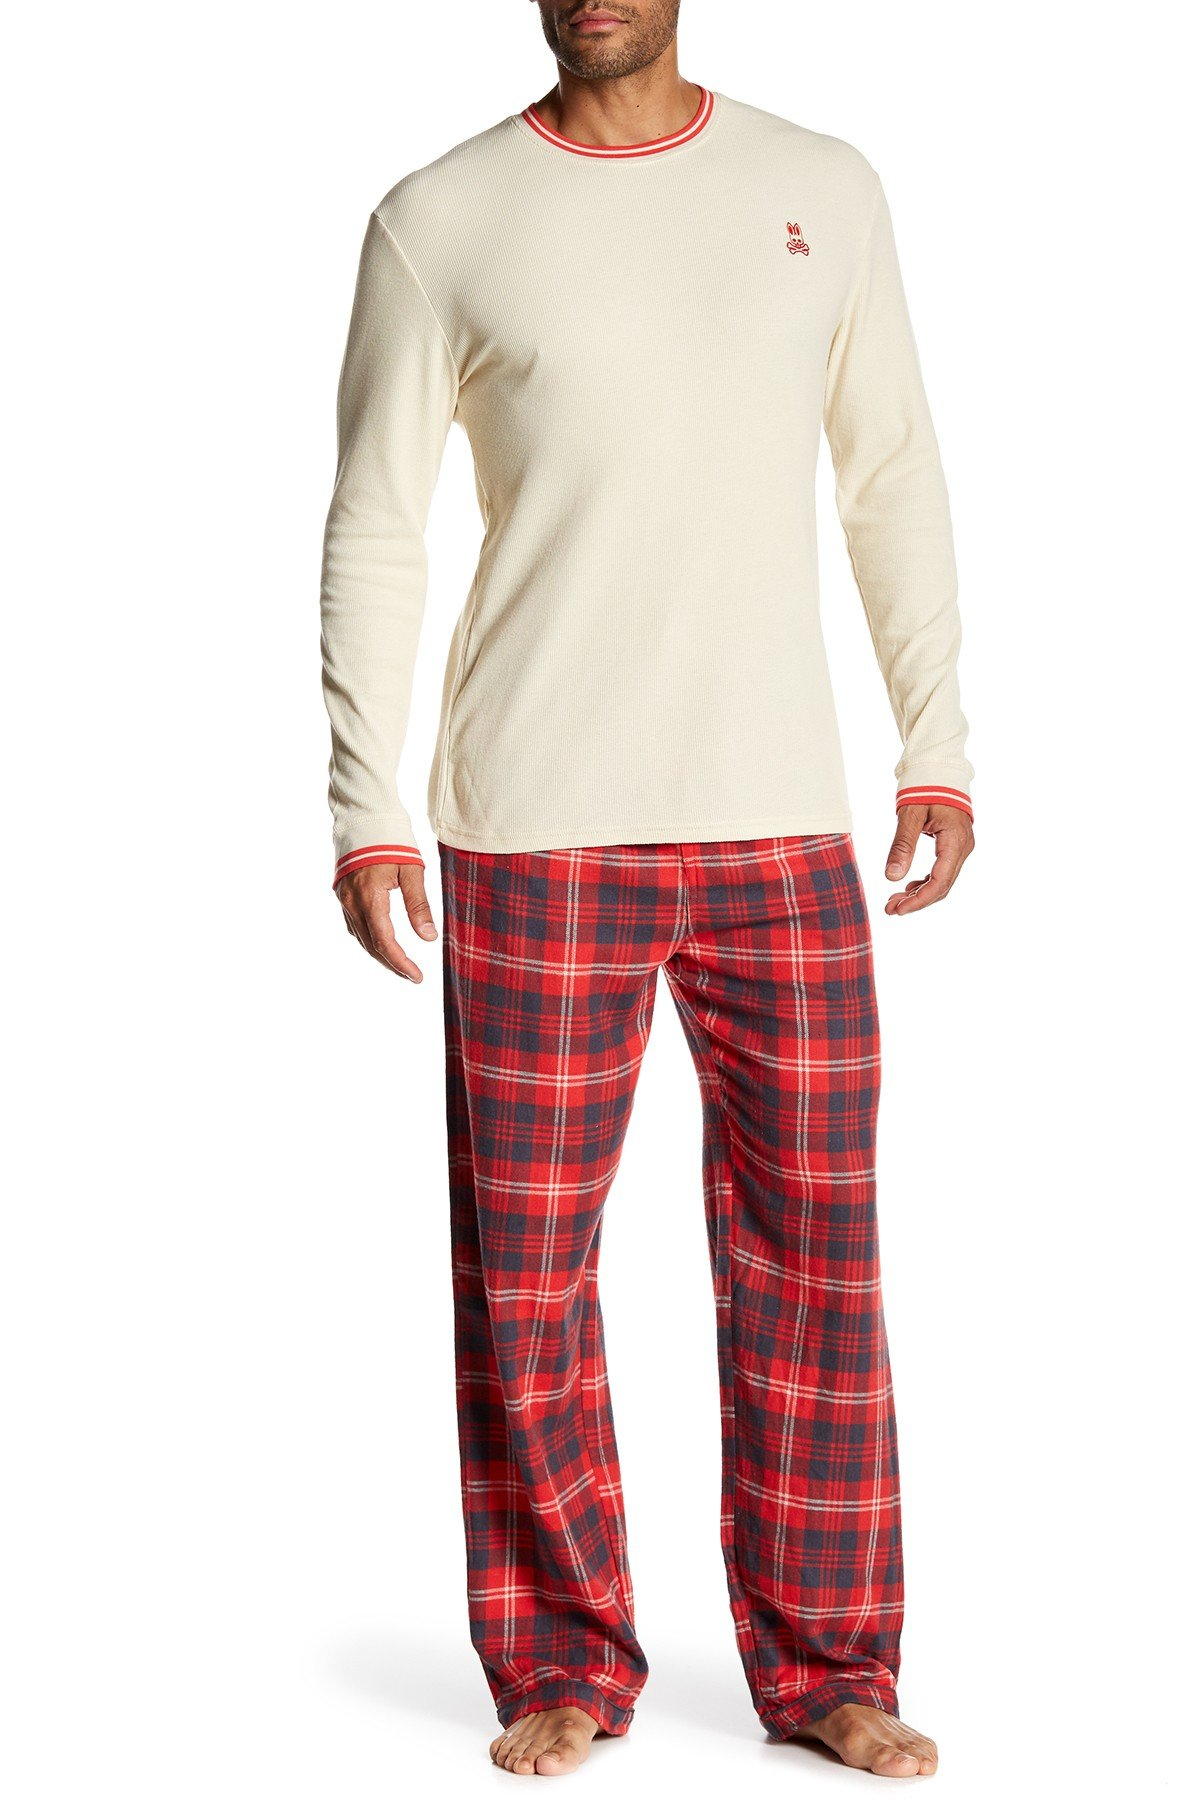 Psycho Bunny Lounge Gift Set (1 Flannel Pant, 1 Waffle Long Sleeve Crew Neck) (Small, Brilliant Red/Bone)